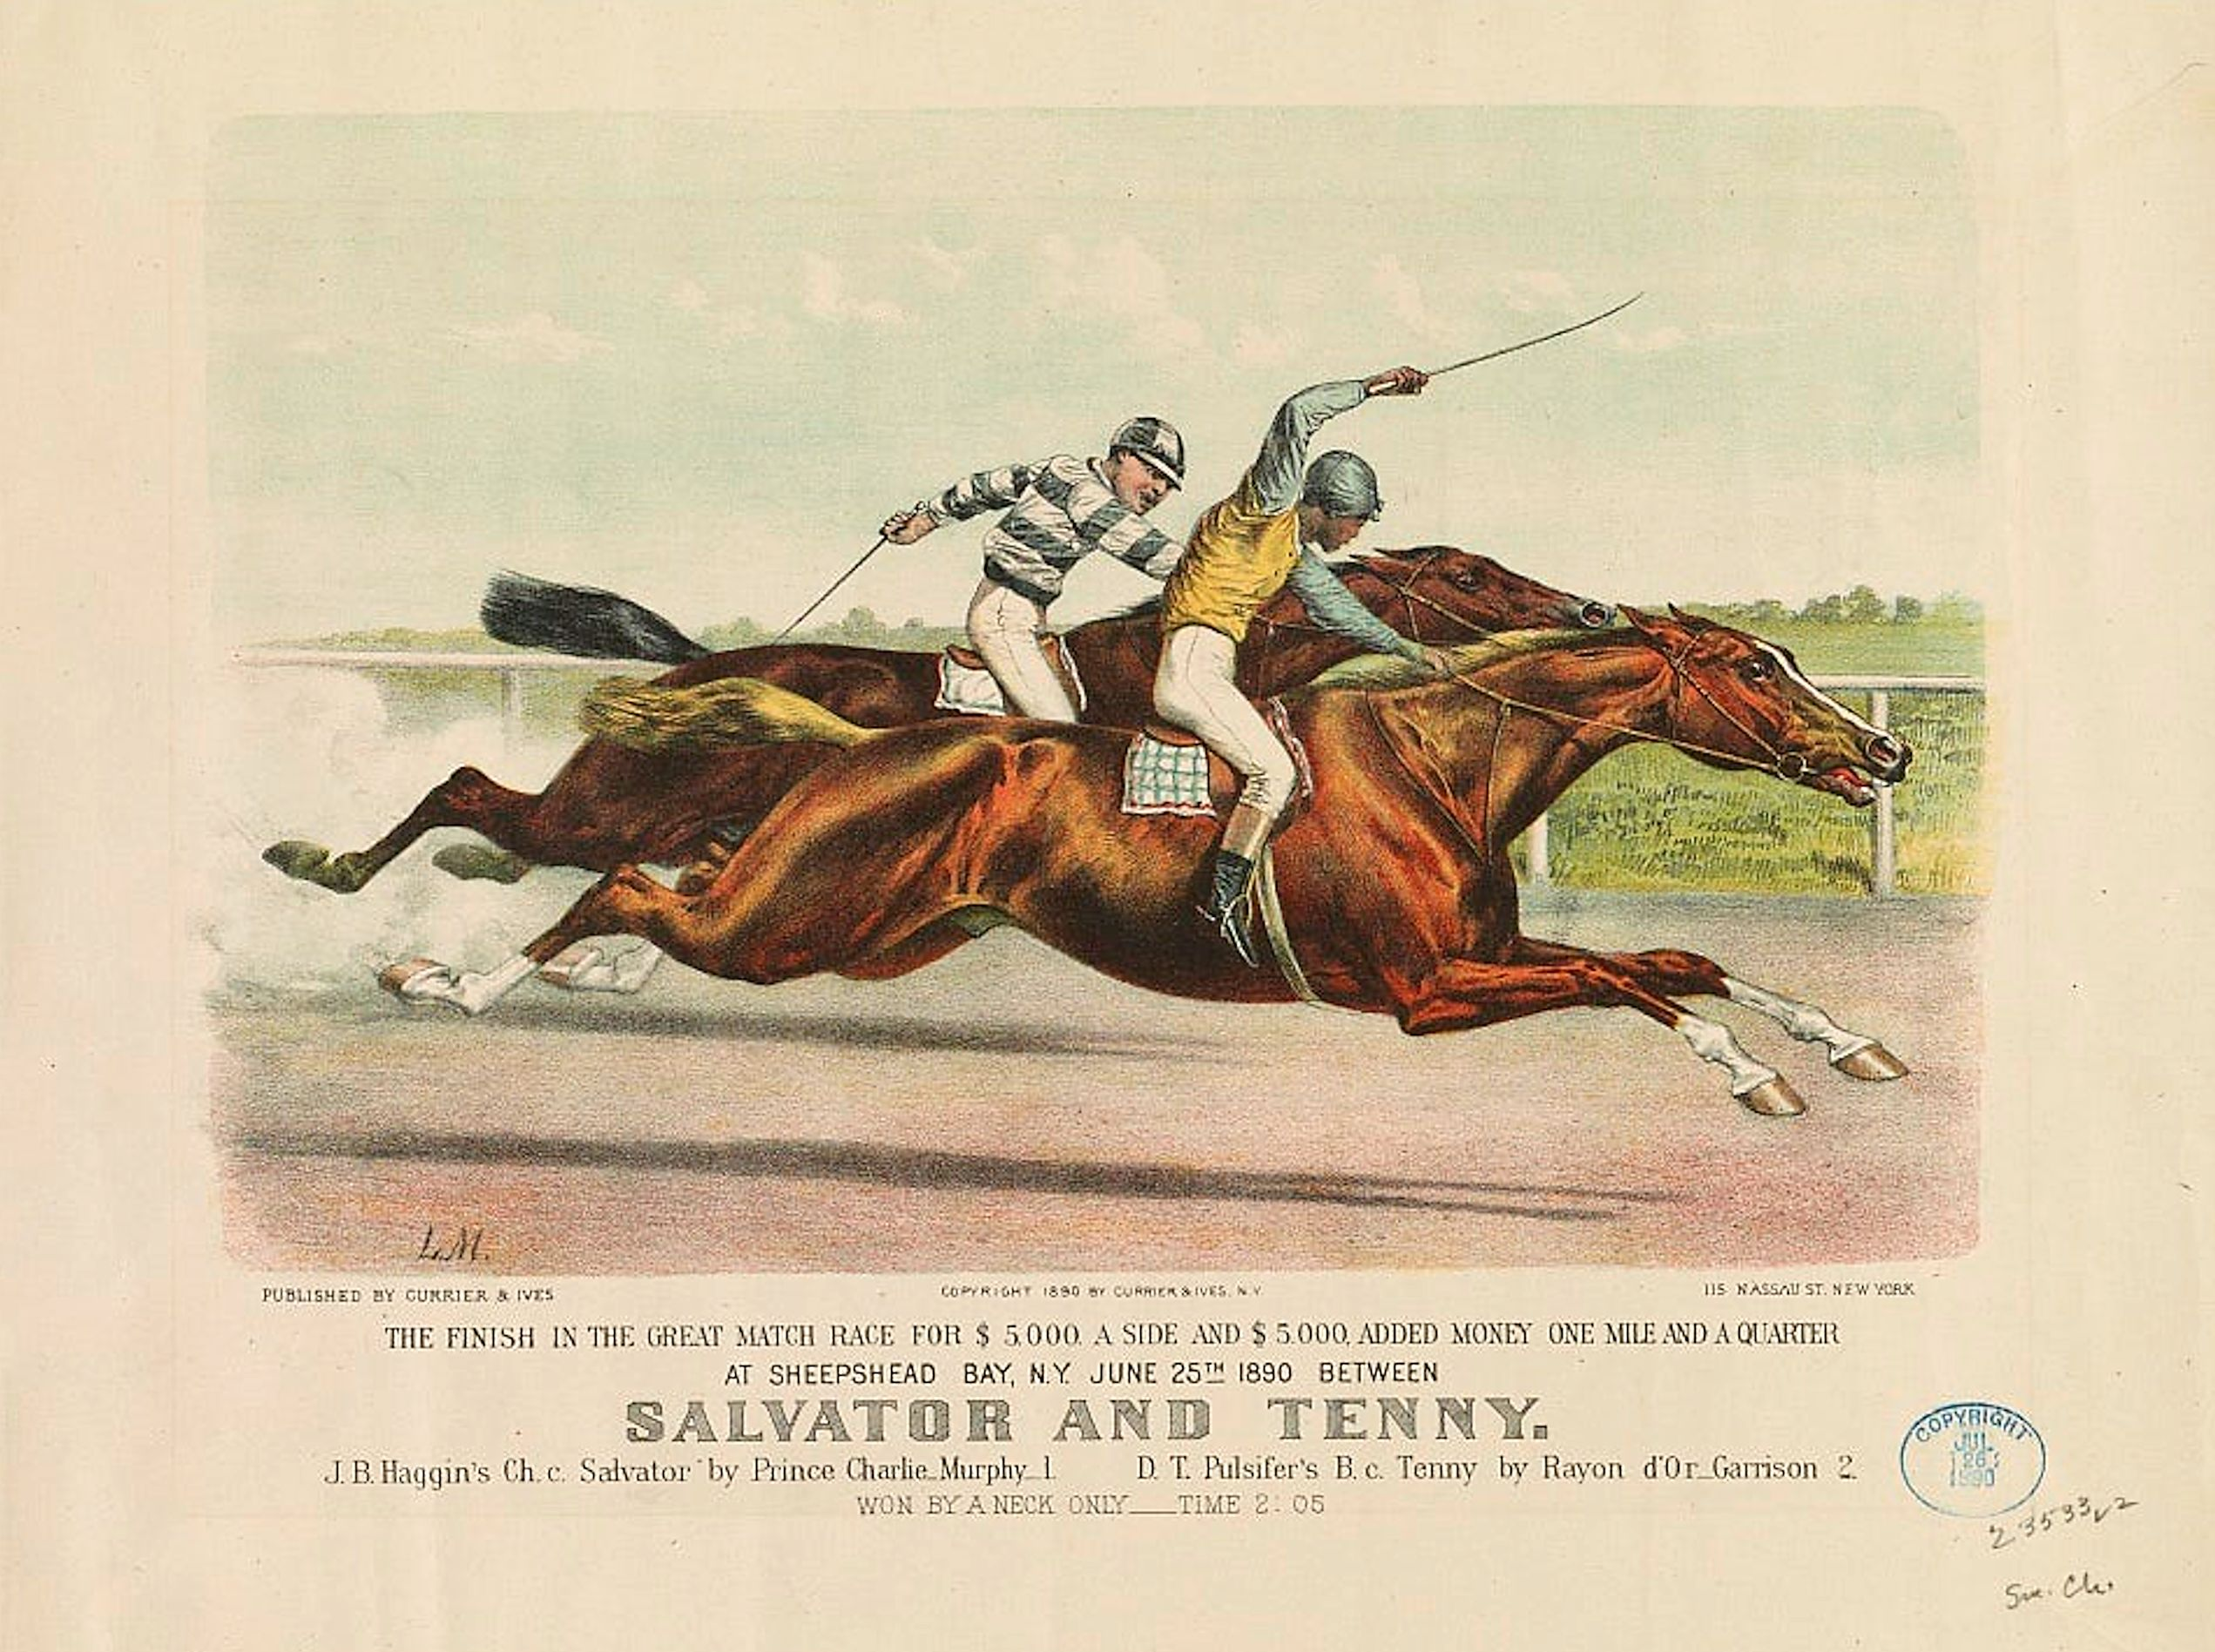 Salvator defeating Tenny in a match race (Currier and Ives)